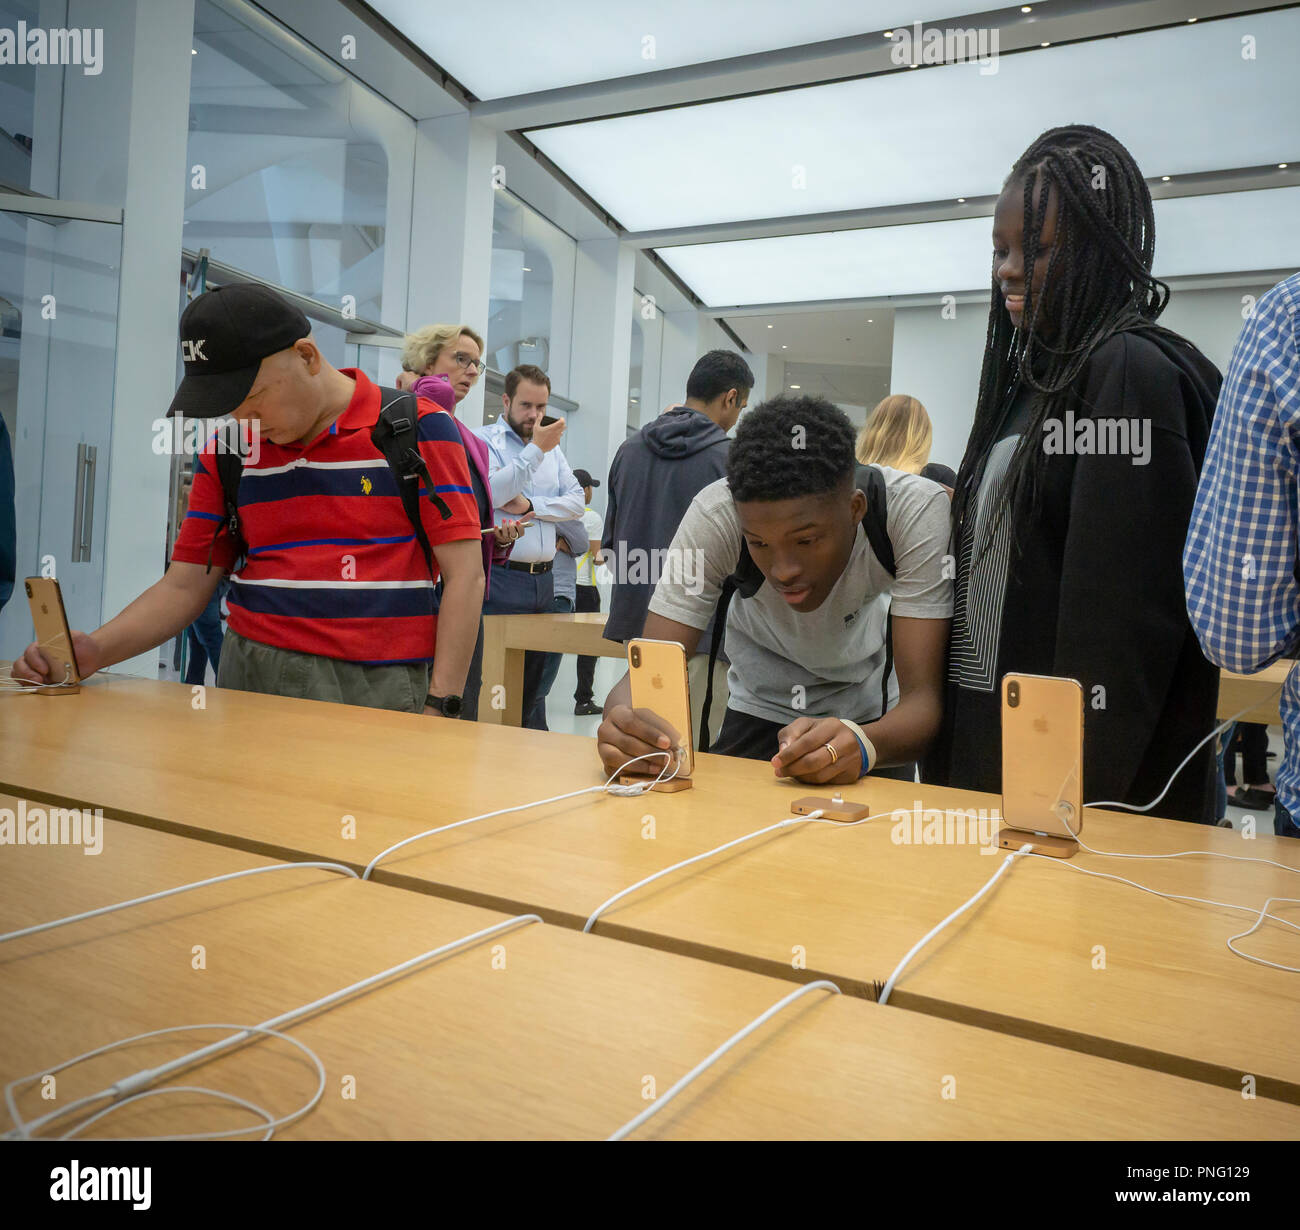 New York, USA. 21st September 2018. Customers in the Apple store in the WTC Transportation Hub in New York try out the new iPhone XS and XS Max on Friday, September 21, 2018, the first day they went on sale.  The new phones, anxiously awaited by drooling iPhone aficionados, sell for a whopping $999 for the XS and $1099 for the XS Max with the Max having a 6.5 inch display.  (© Richard B. Levine) Credit: Richard Levine/Alamy Live News Credit: Richard Levine/Alamy Live News - Stock Image